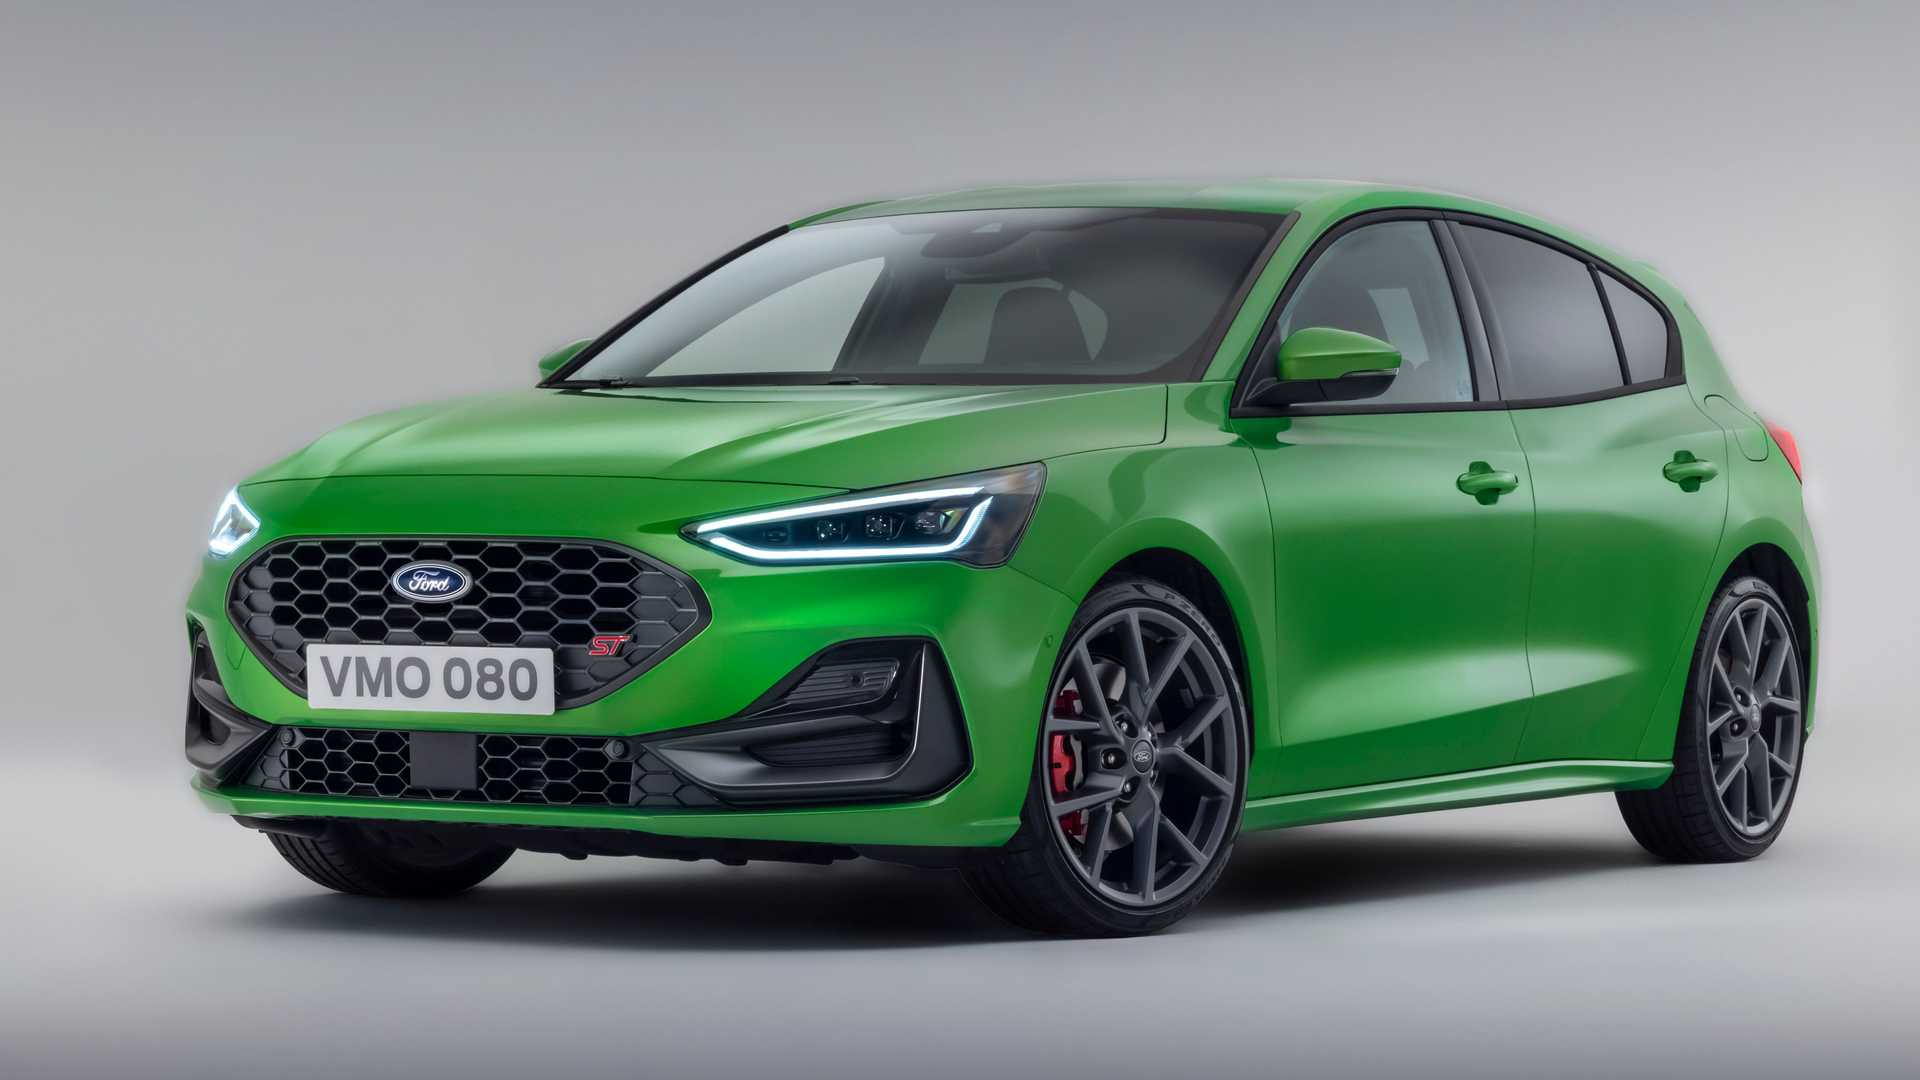 Ford Europe has revealed a facelift version of its Focus bestseller, complete with major exterior changes and a new transmission option.